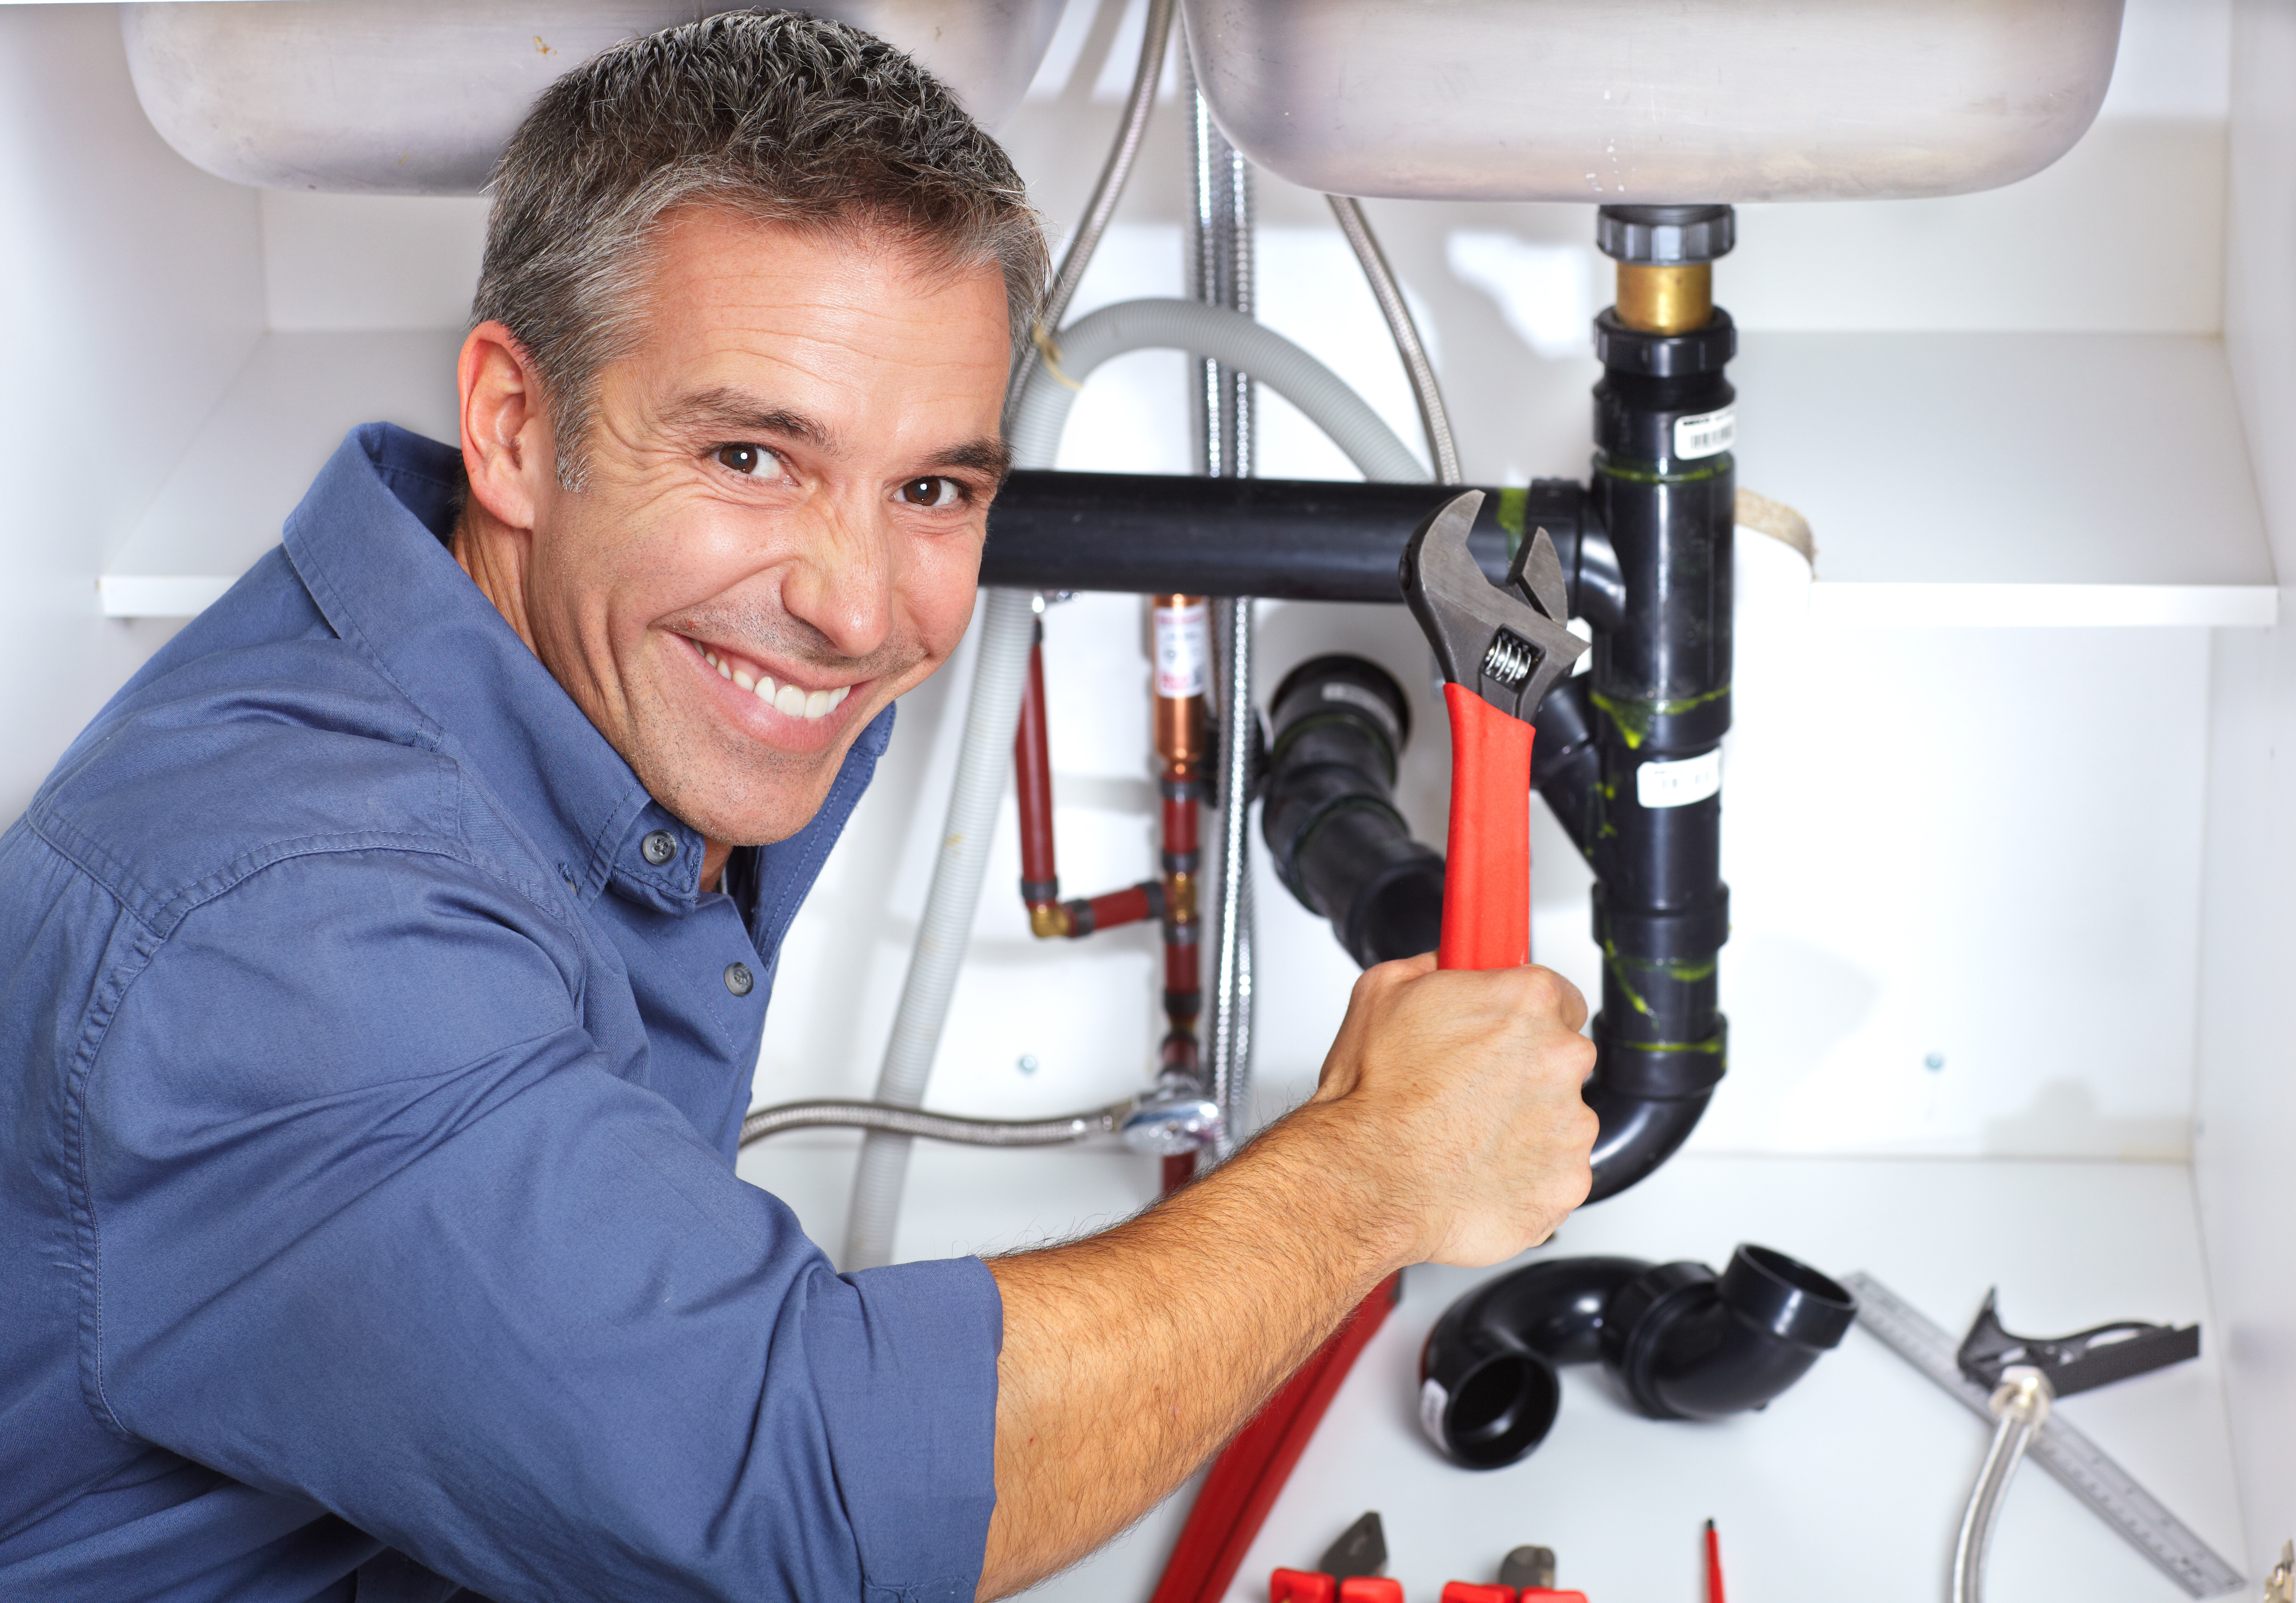 About us. Plumbers Dublin. Plumbers Experts